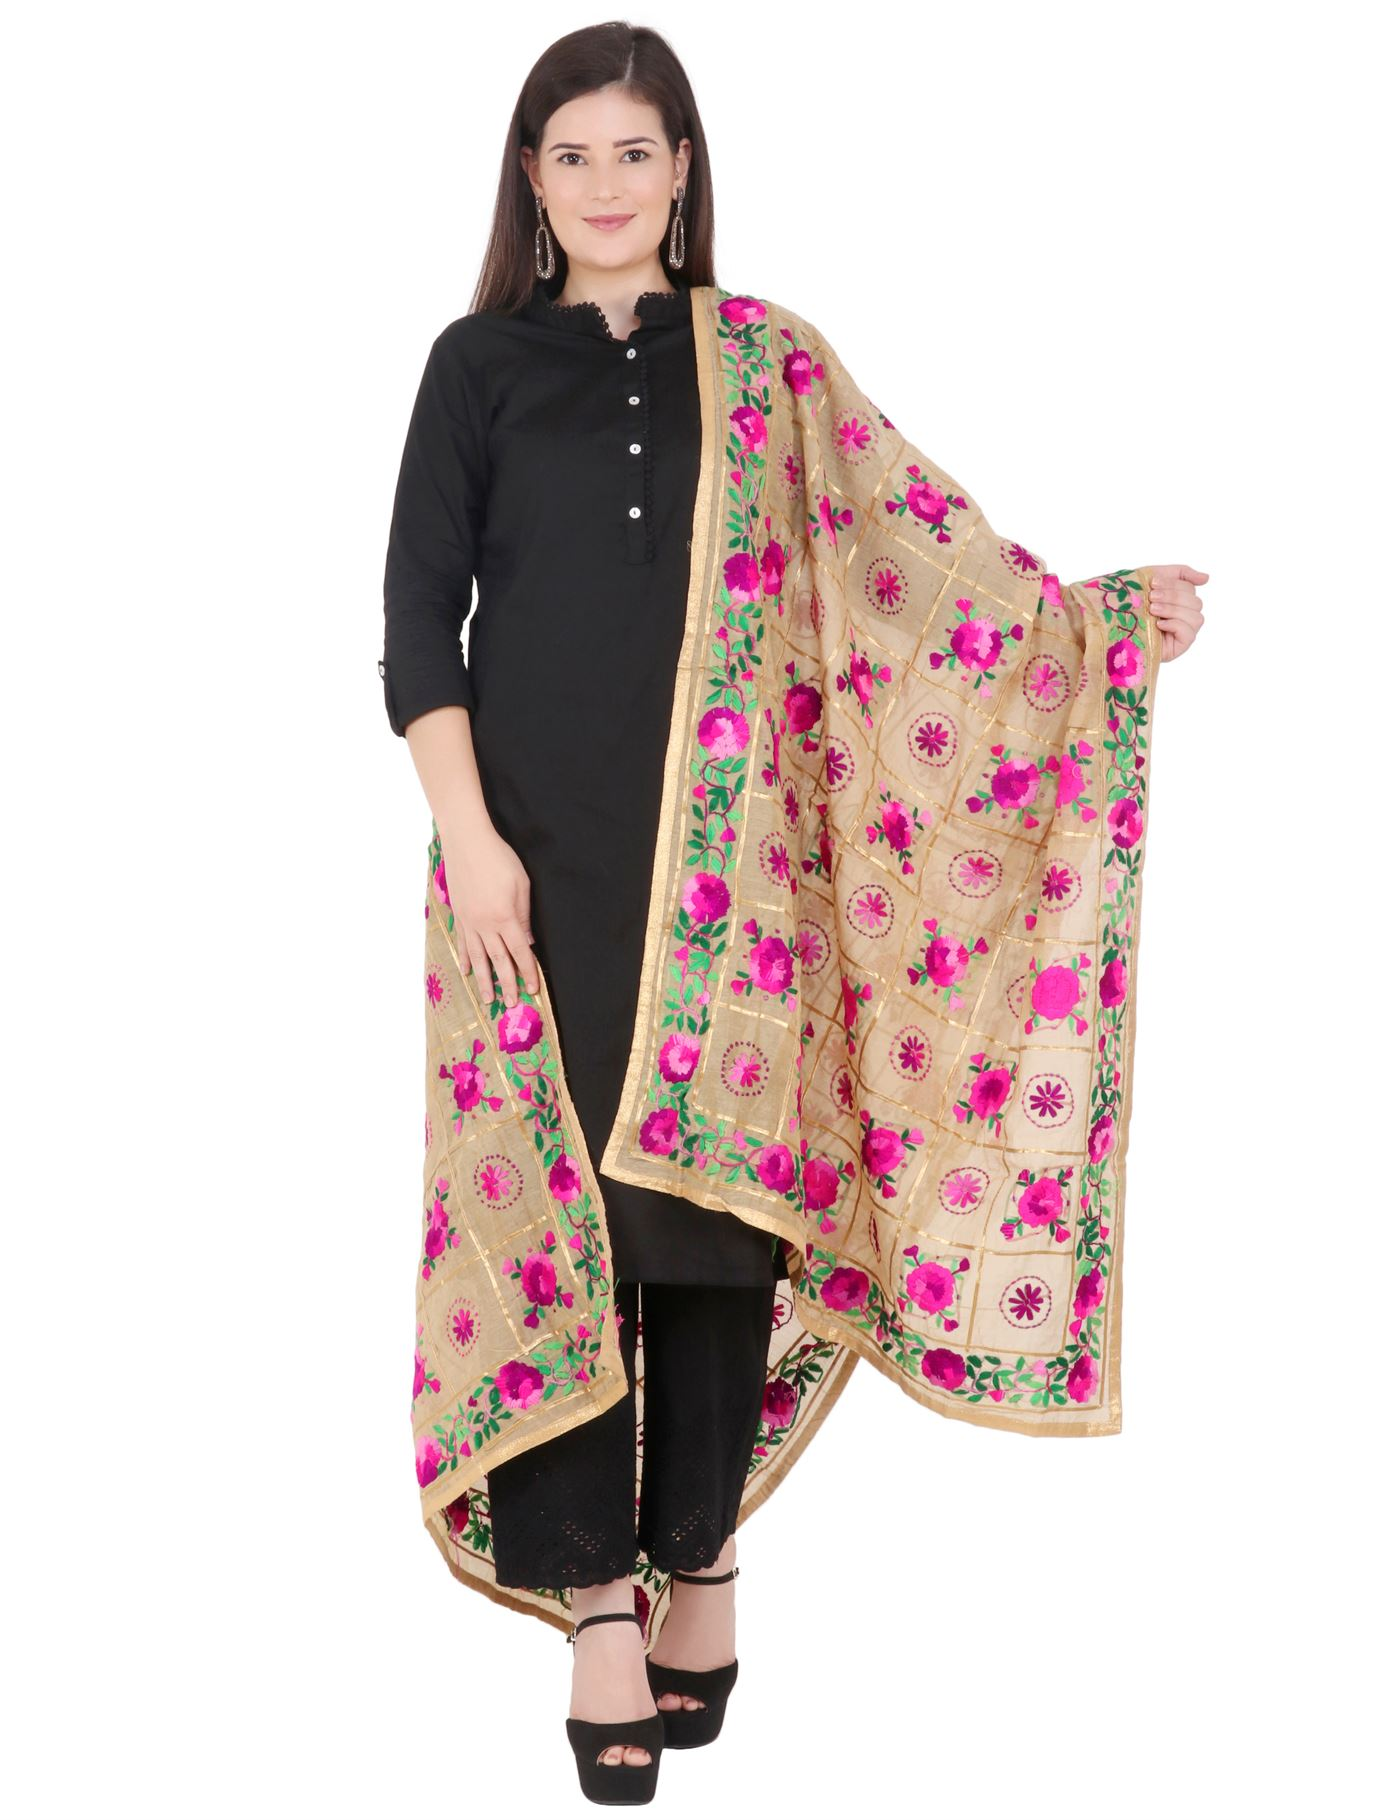 Moda Chales Pink Floral Hand Embroidered Dupatta With Golden Border